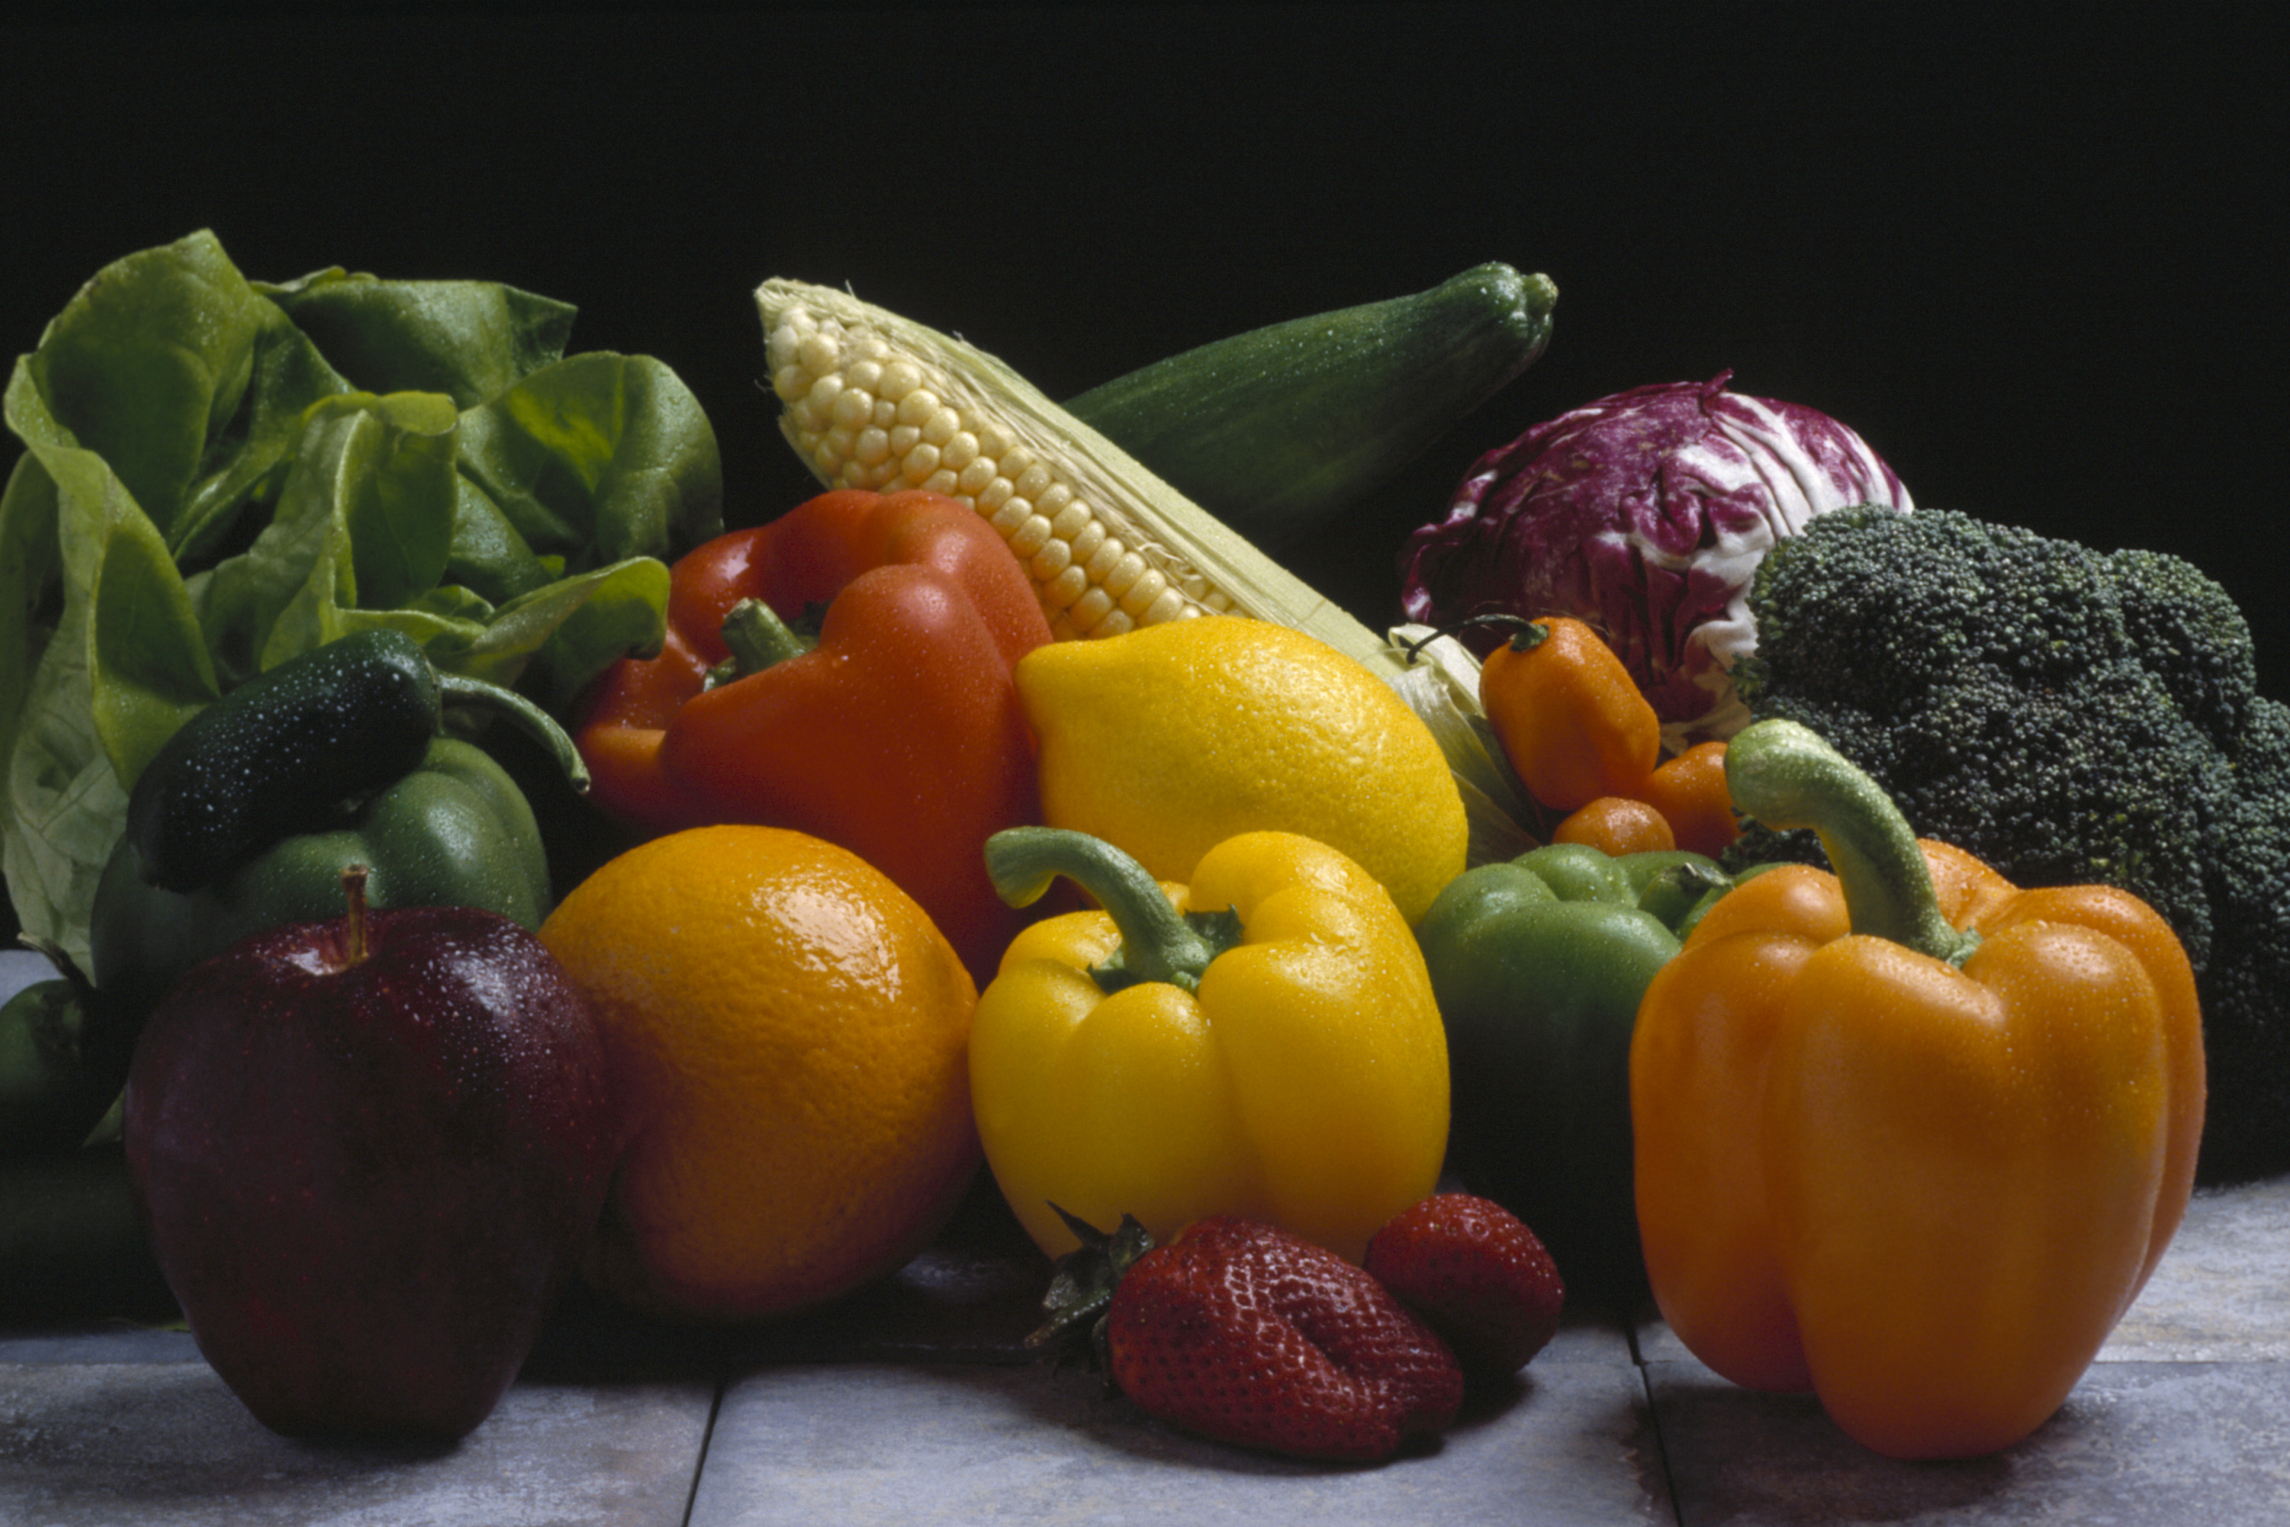 Fruits and vegetables are rich sources of dietary fiber.